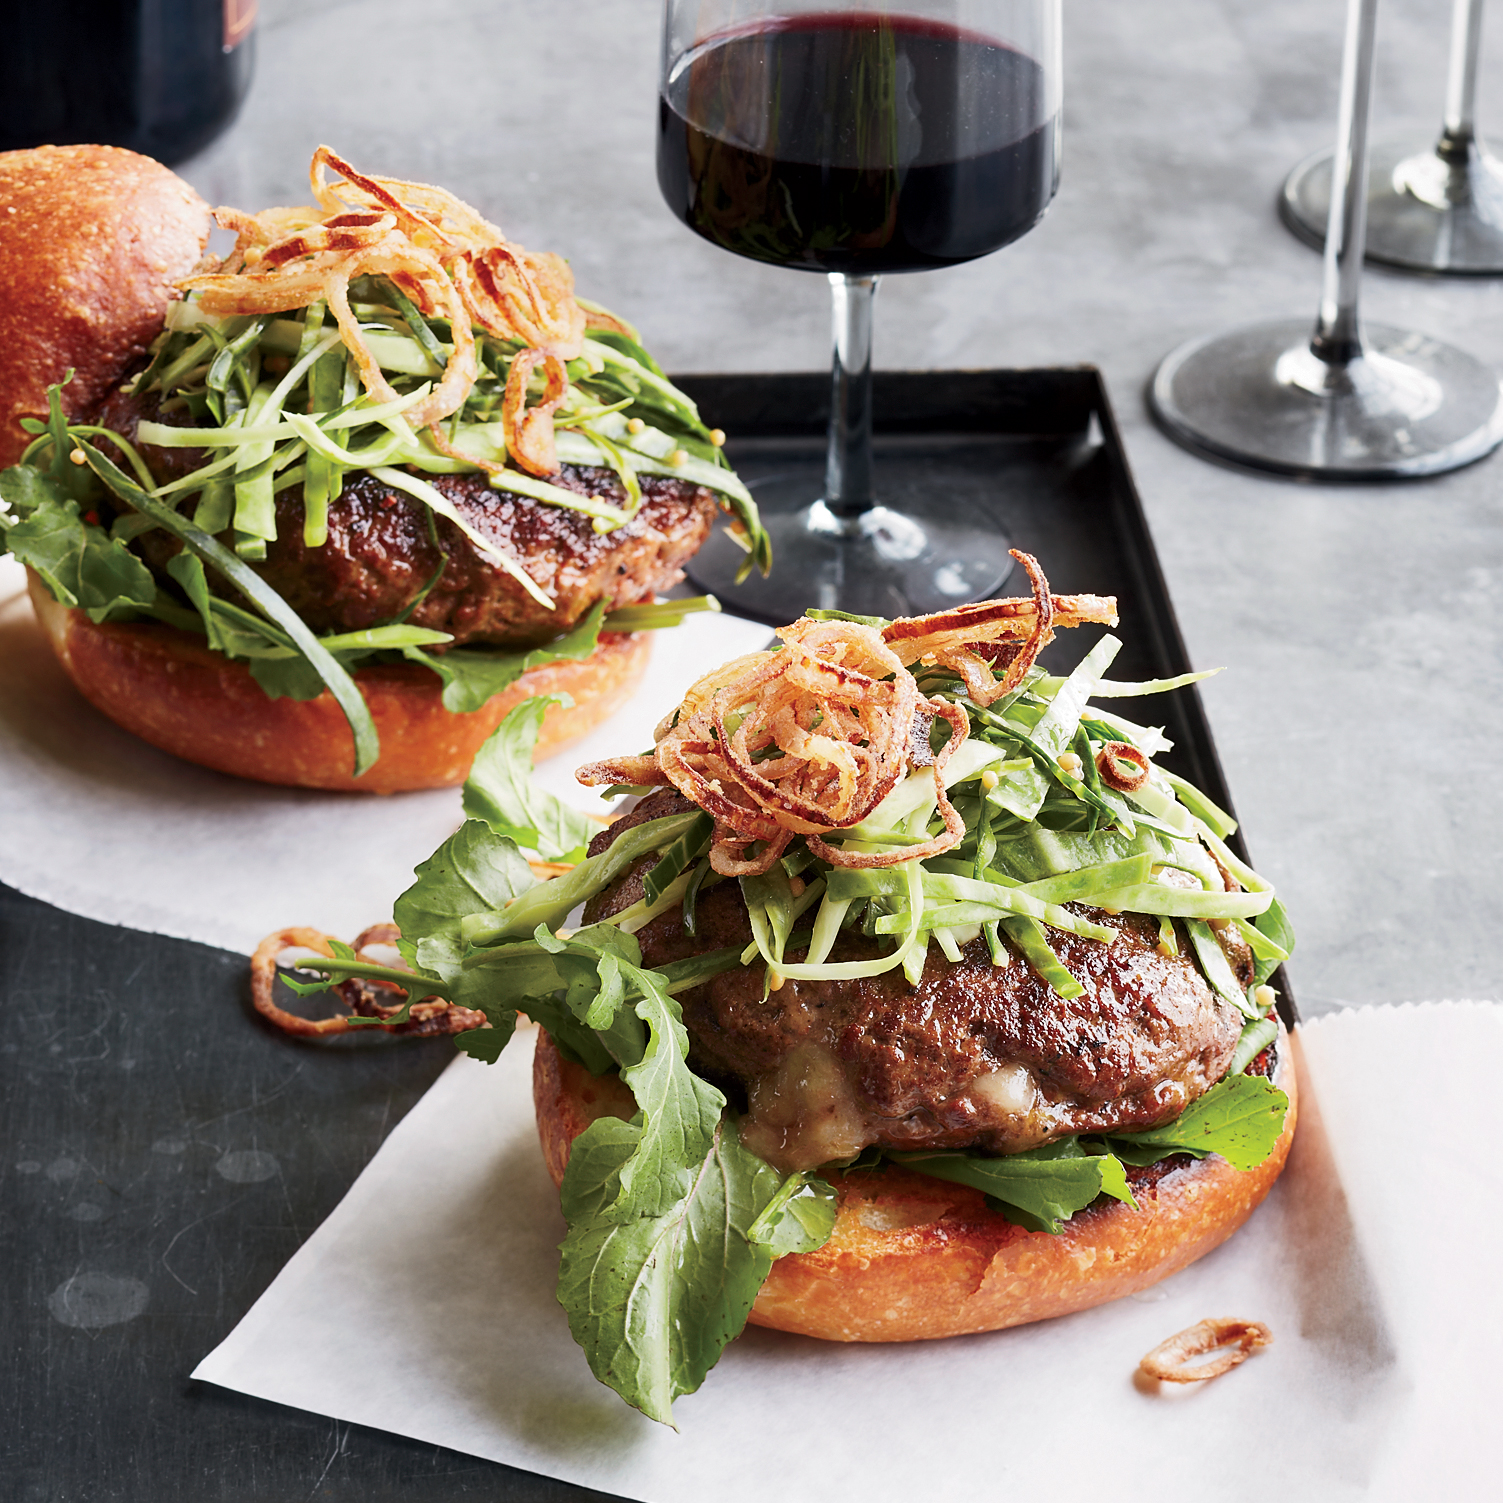 Cheddar-Stuffed Burgers with Pickled Slaw and Fried Shallots Recipe